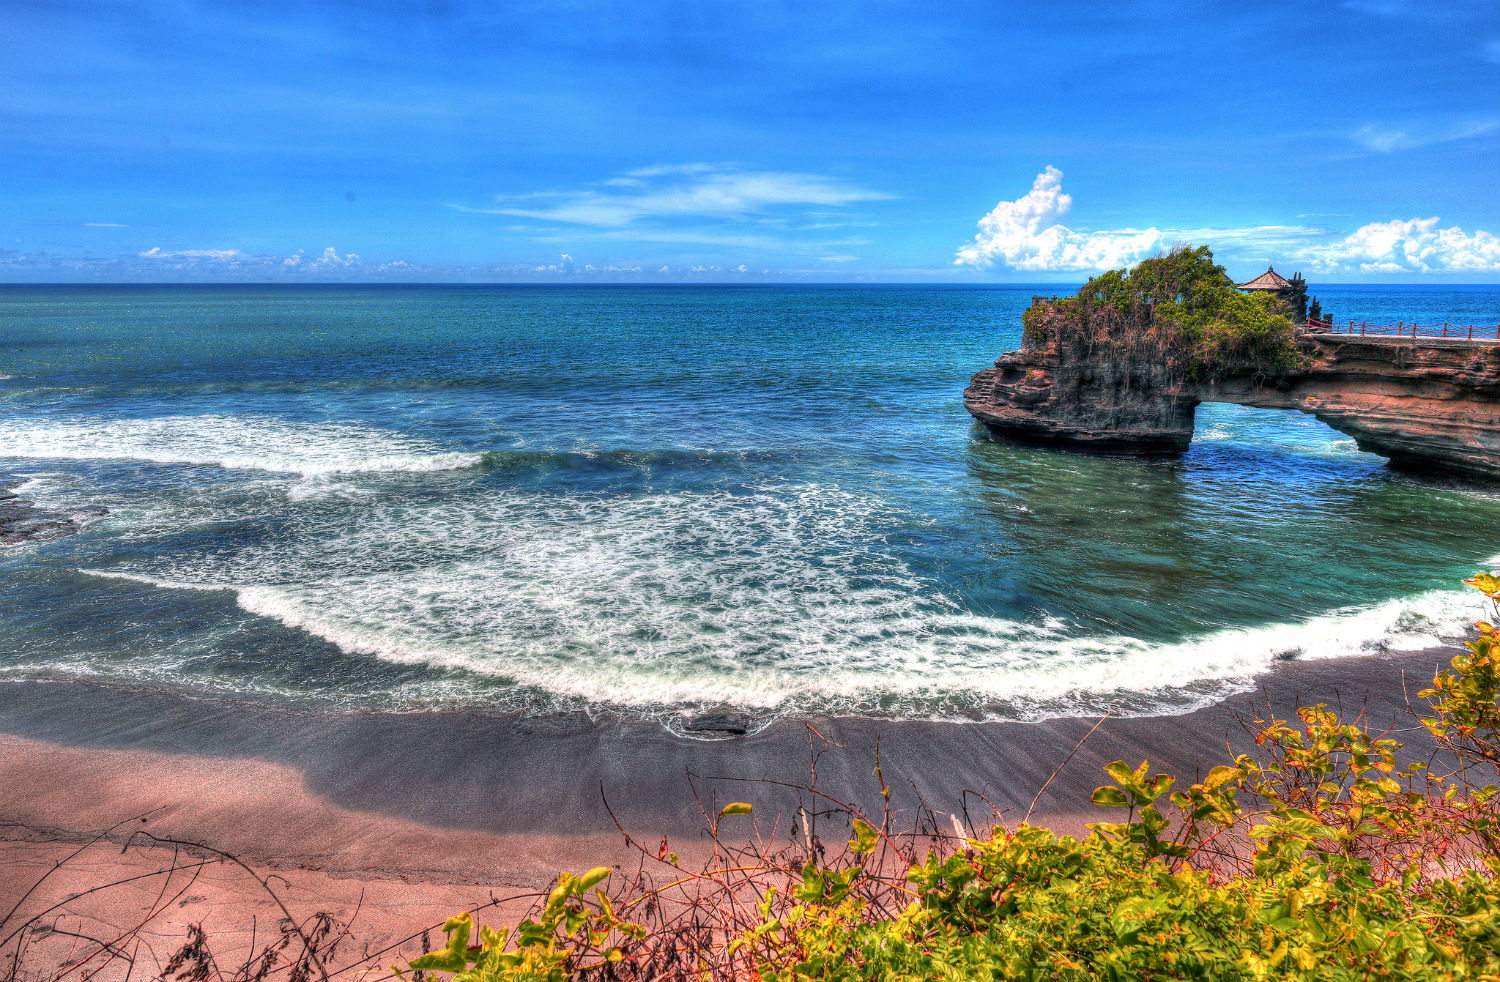 Westwing, Bali, Colori, Natura, Oriente, Relax, Spiagge